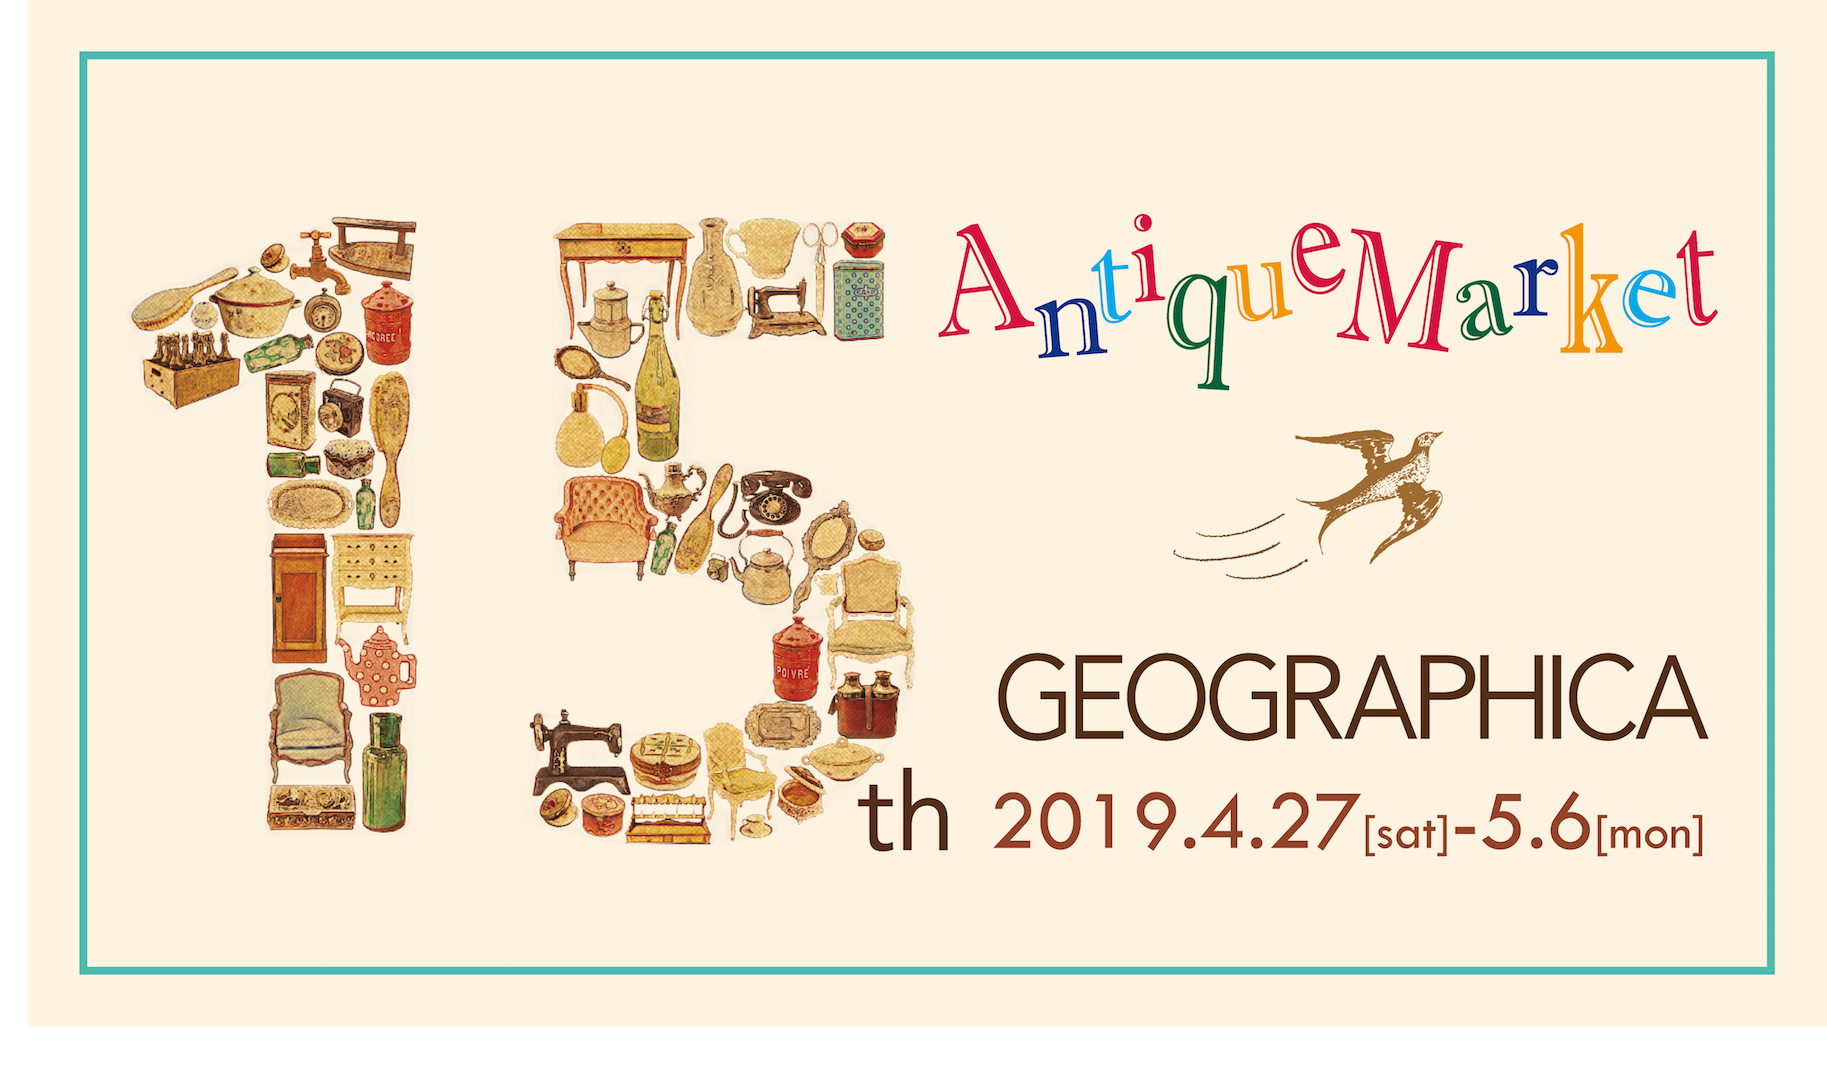 15th Anniversary GEOGRAPHICA Antique Market